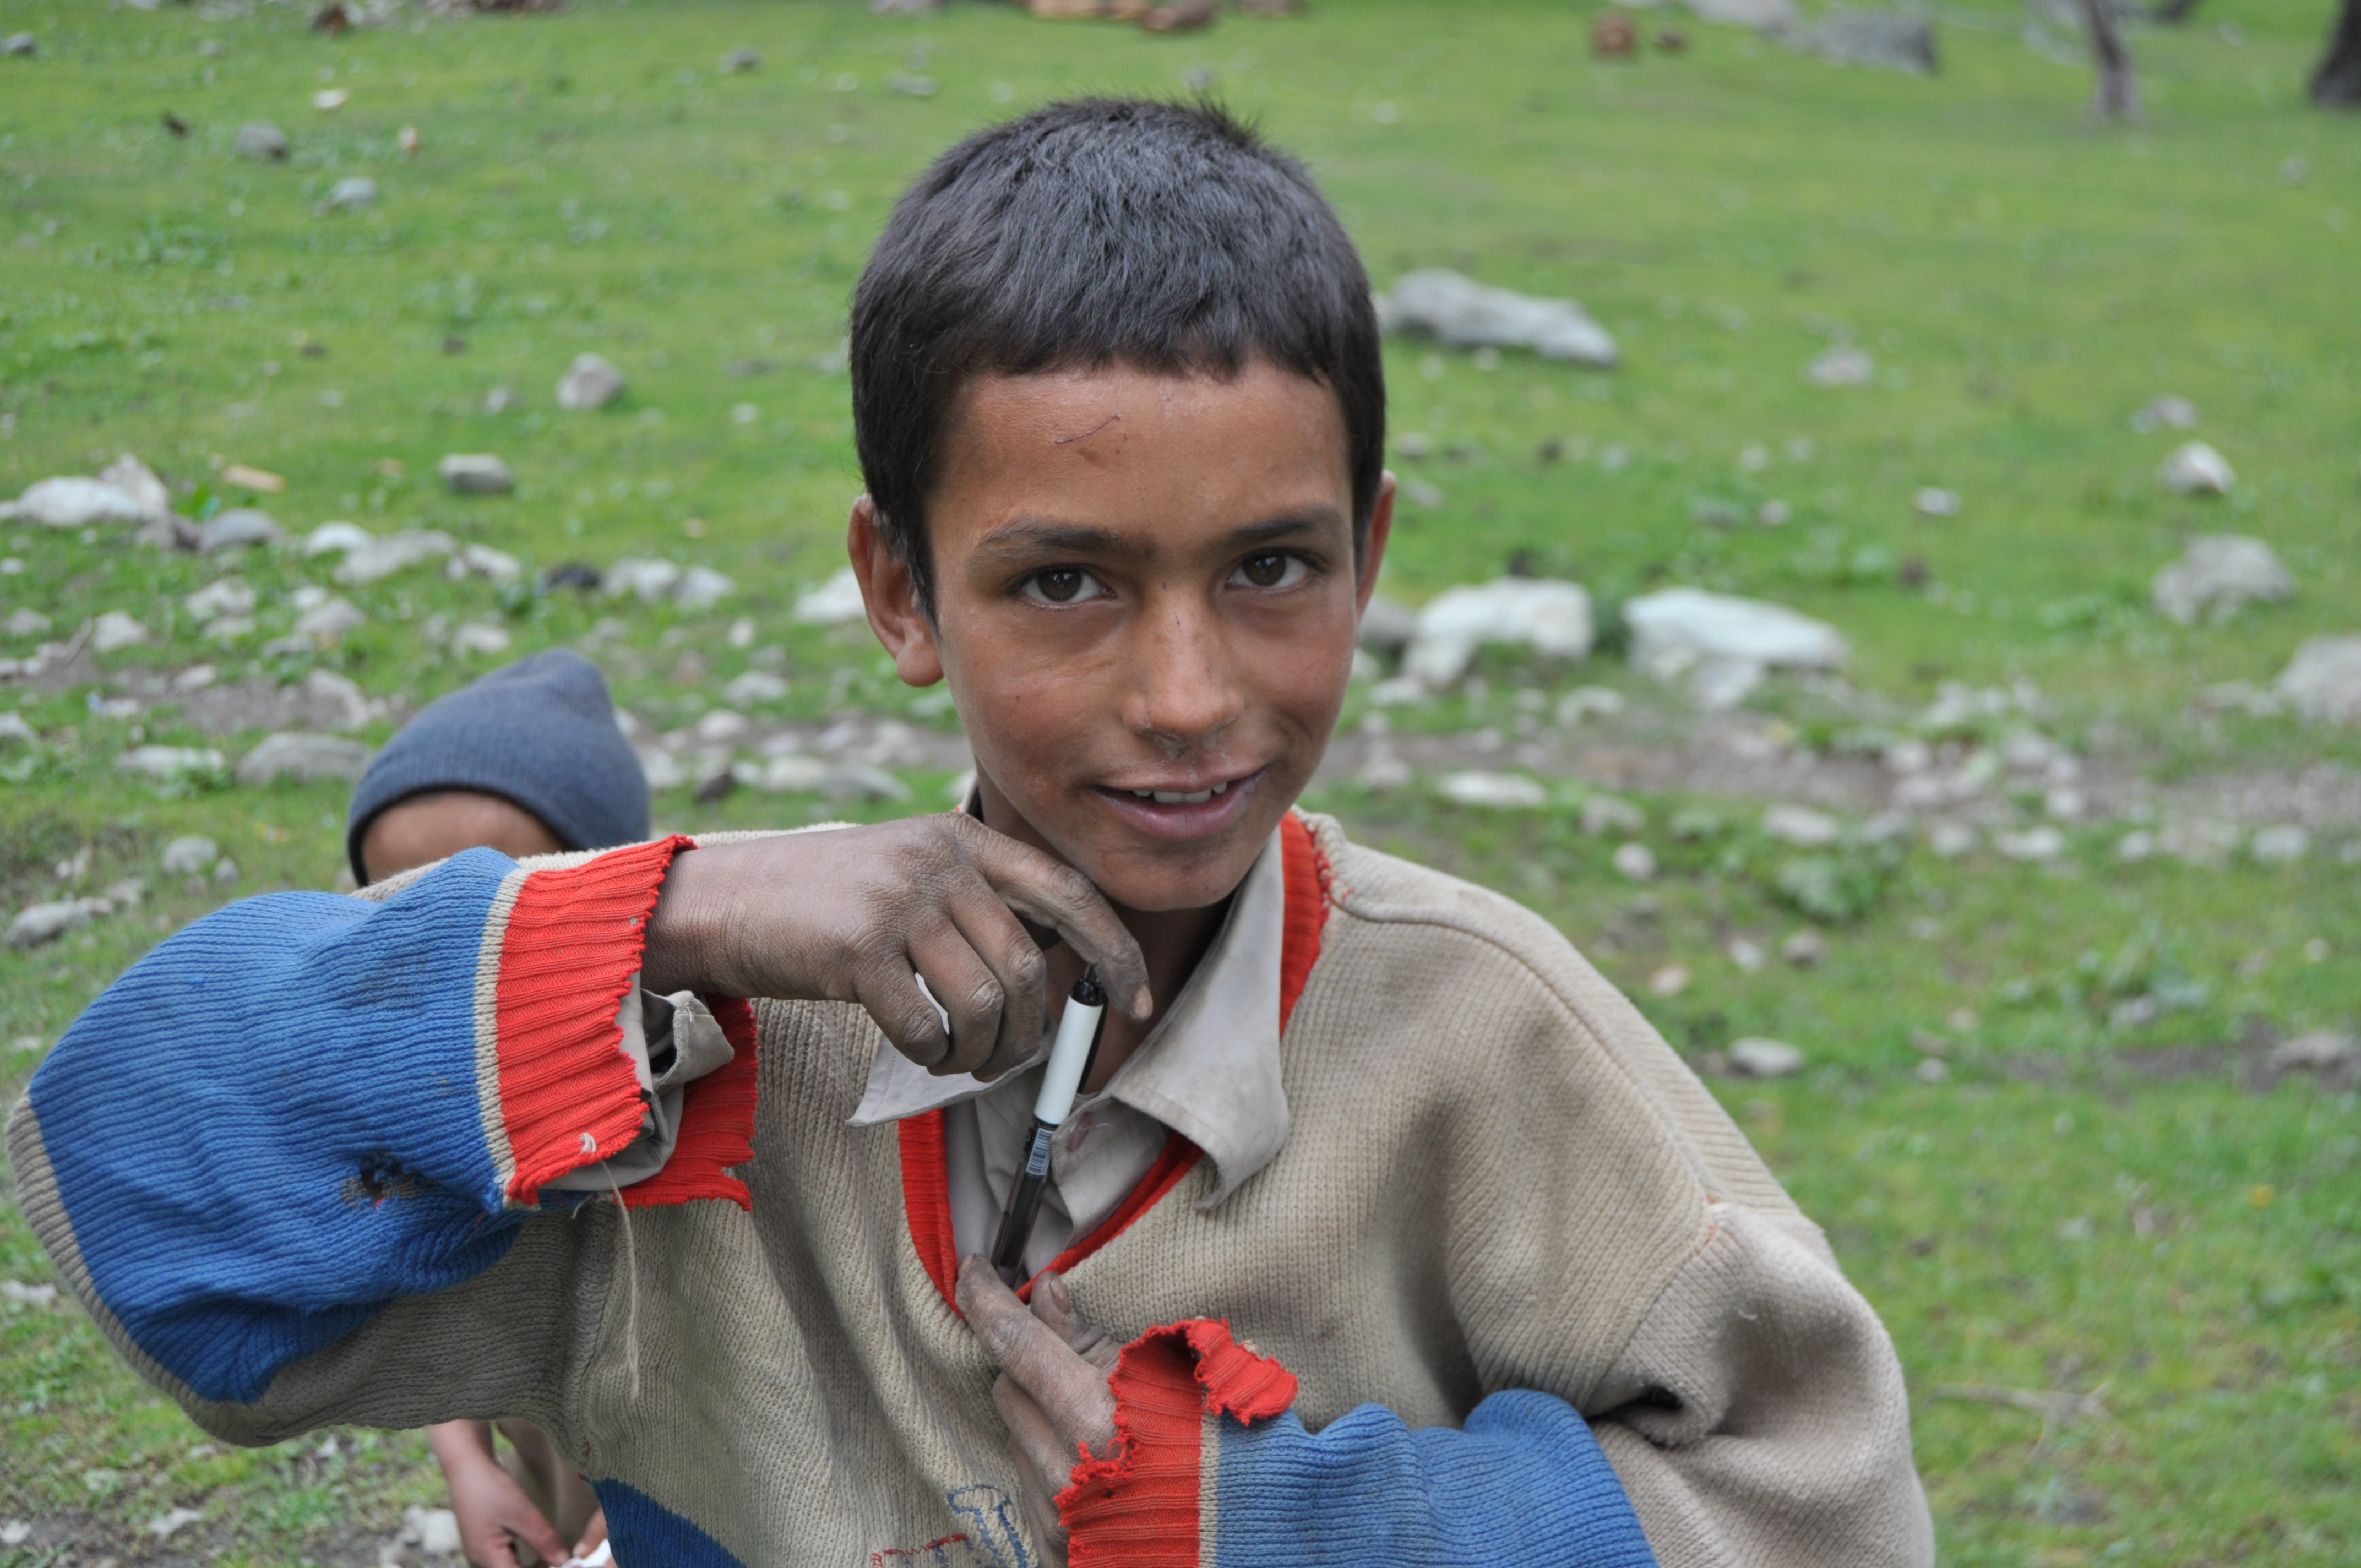 Himalayan gypsy boy